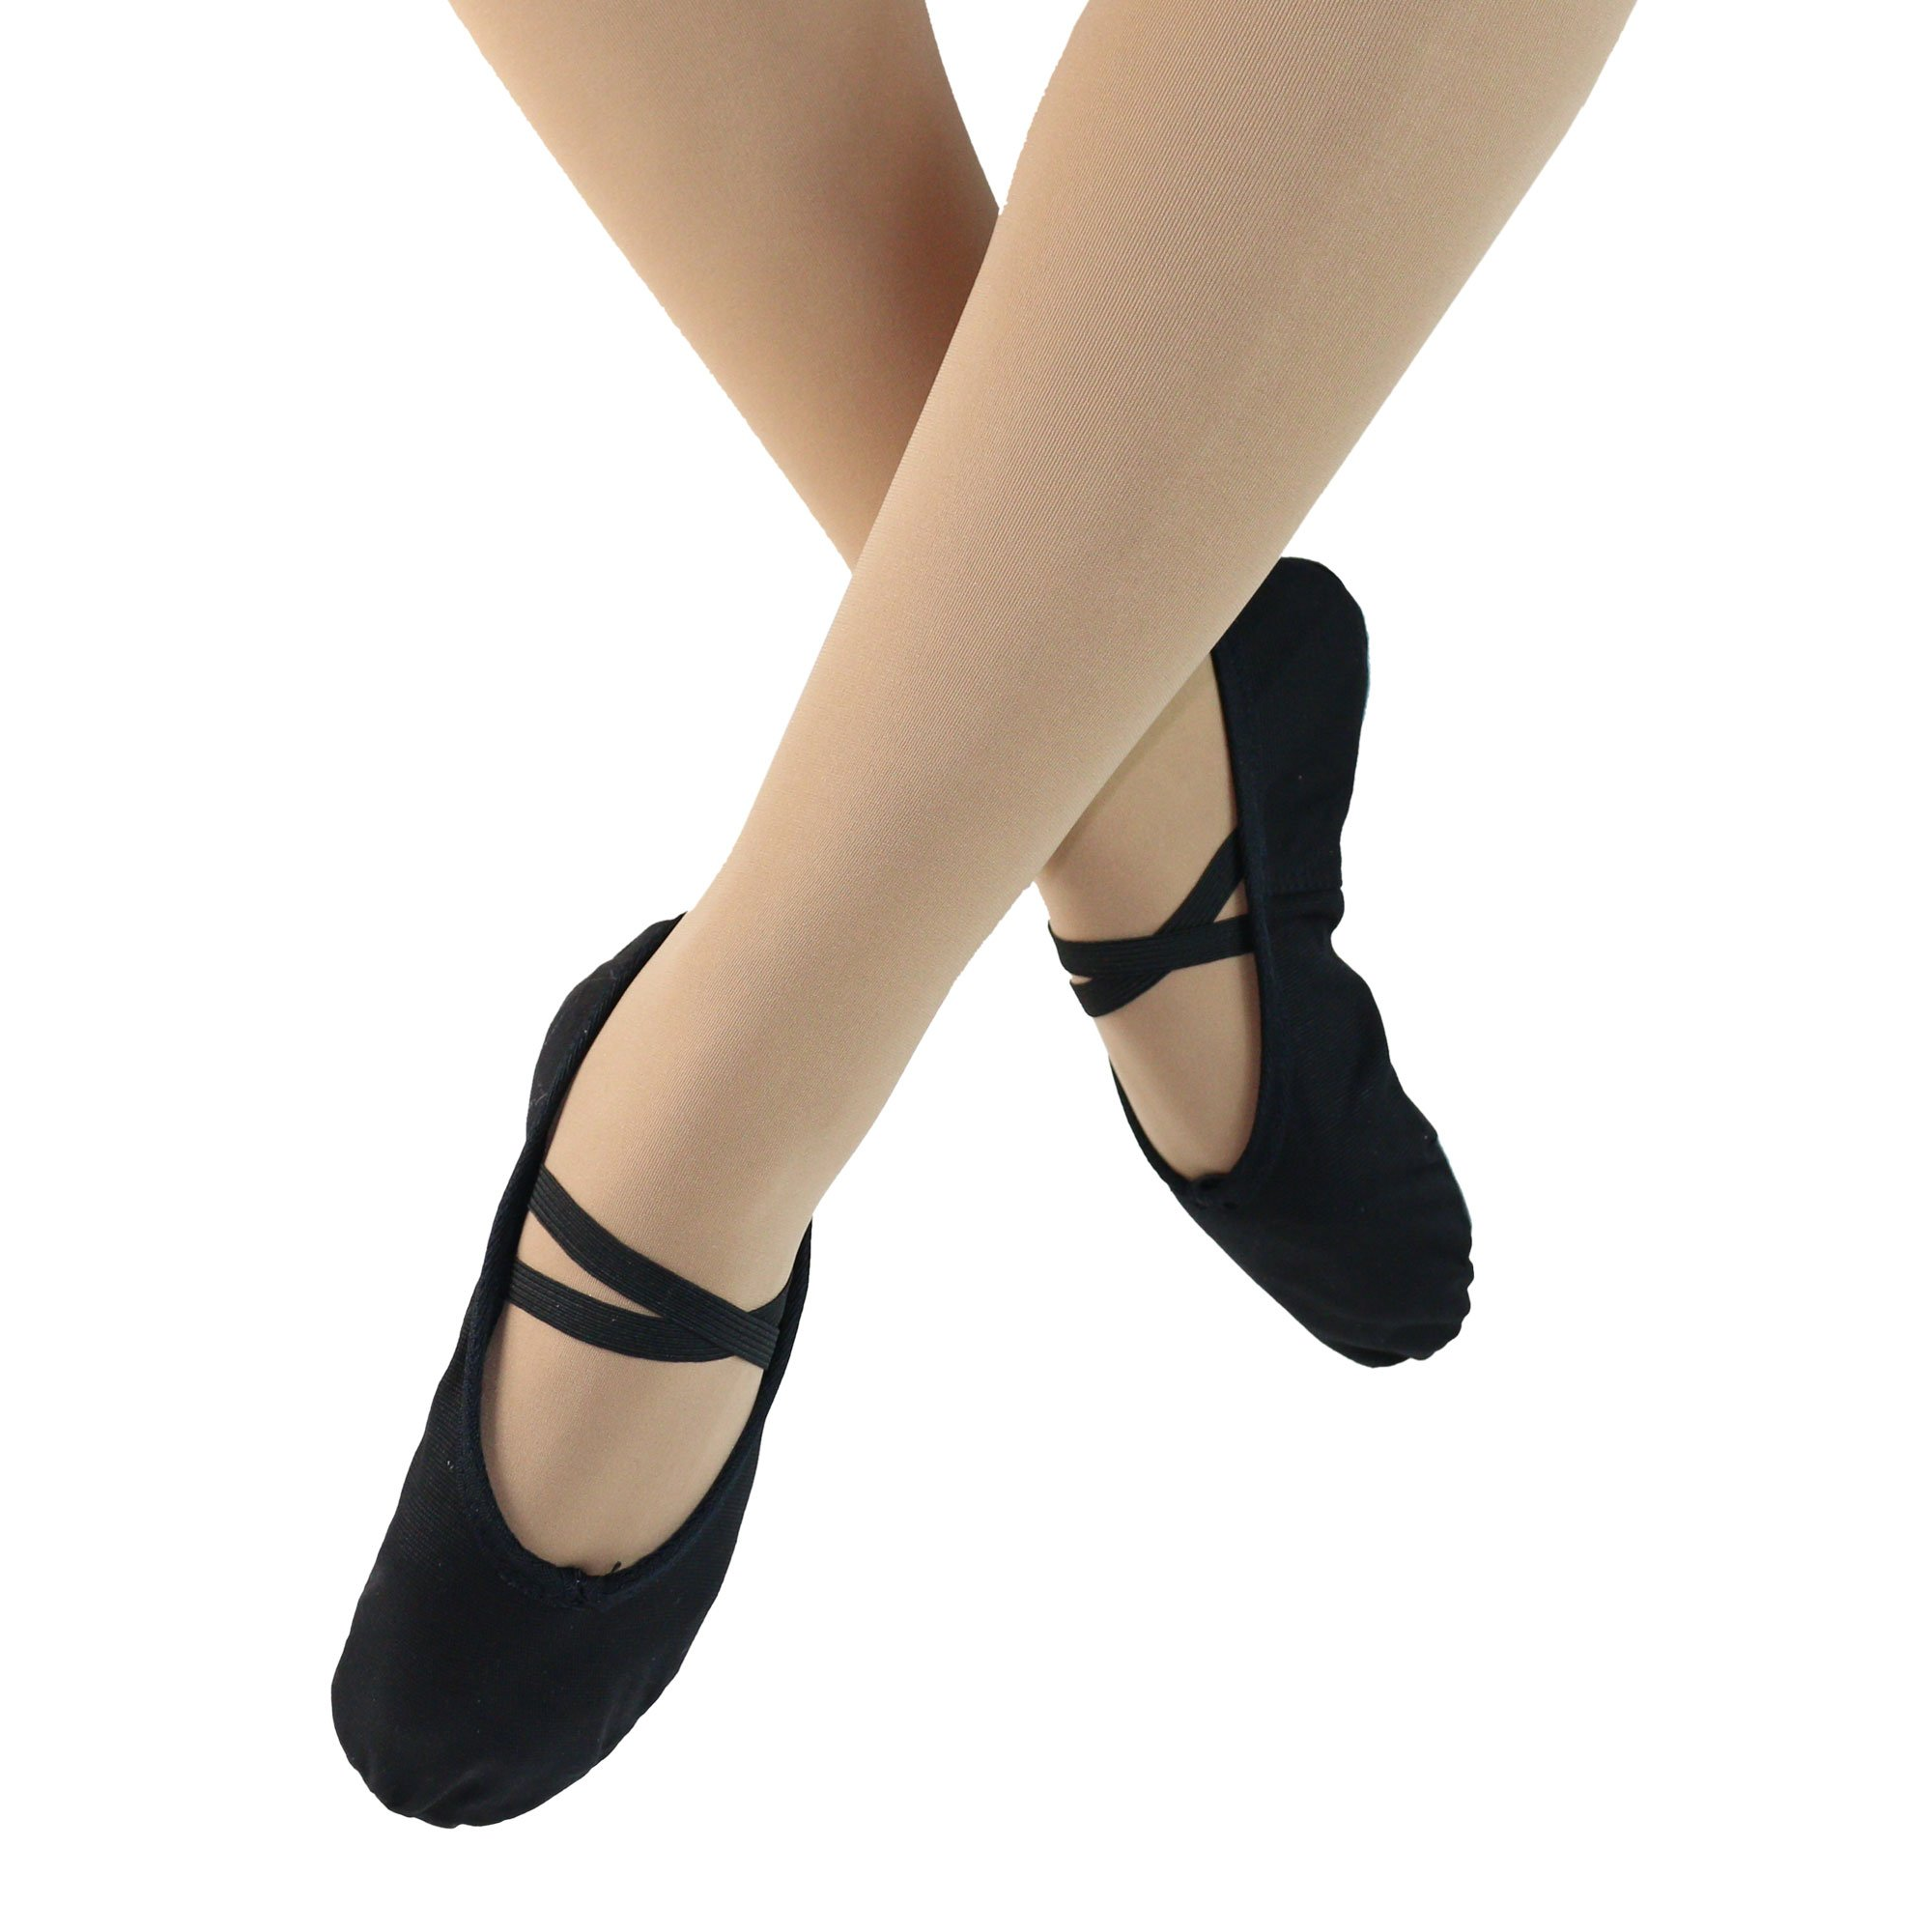 Danzcue Ballet Slipper Women's Canvas Split Sole Ballet Shoes